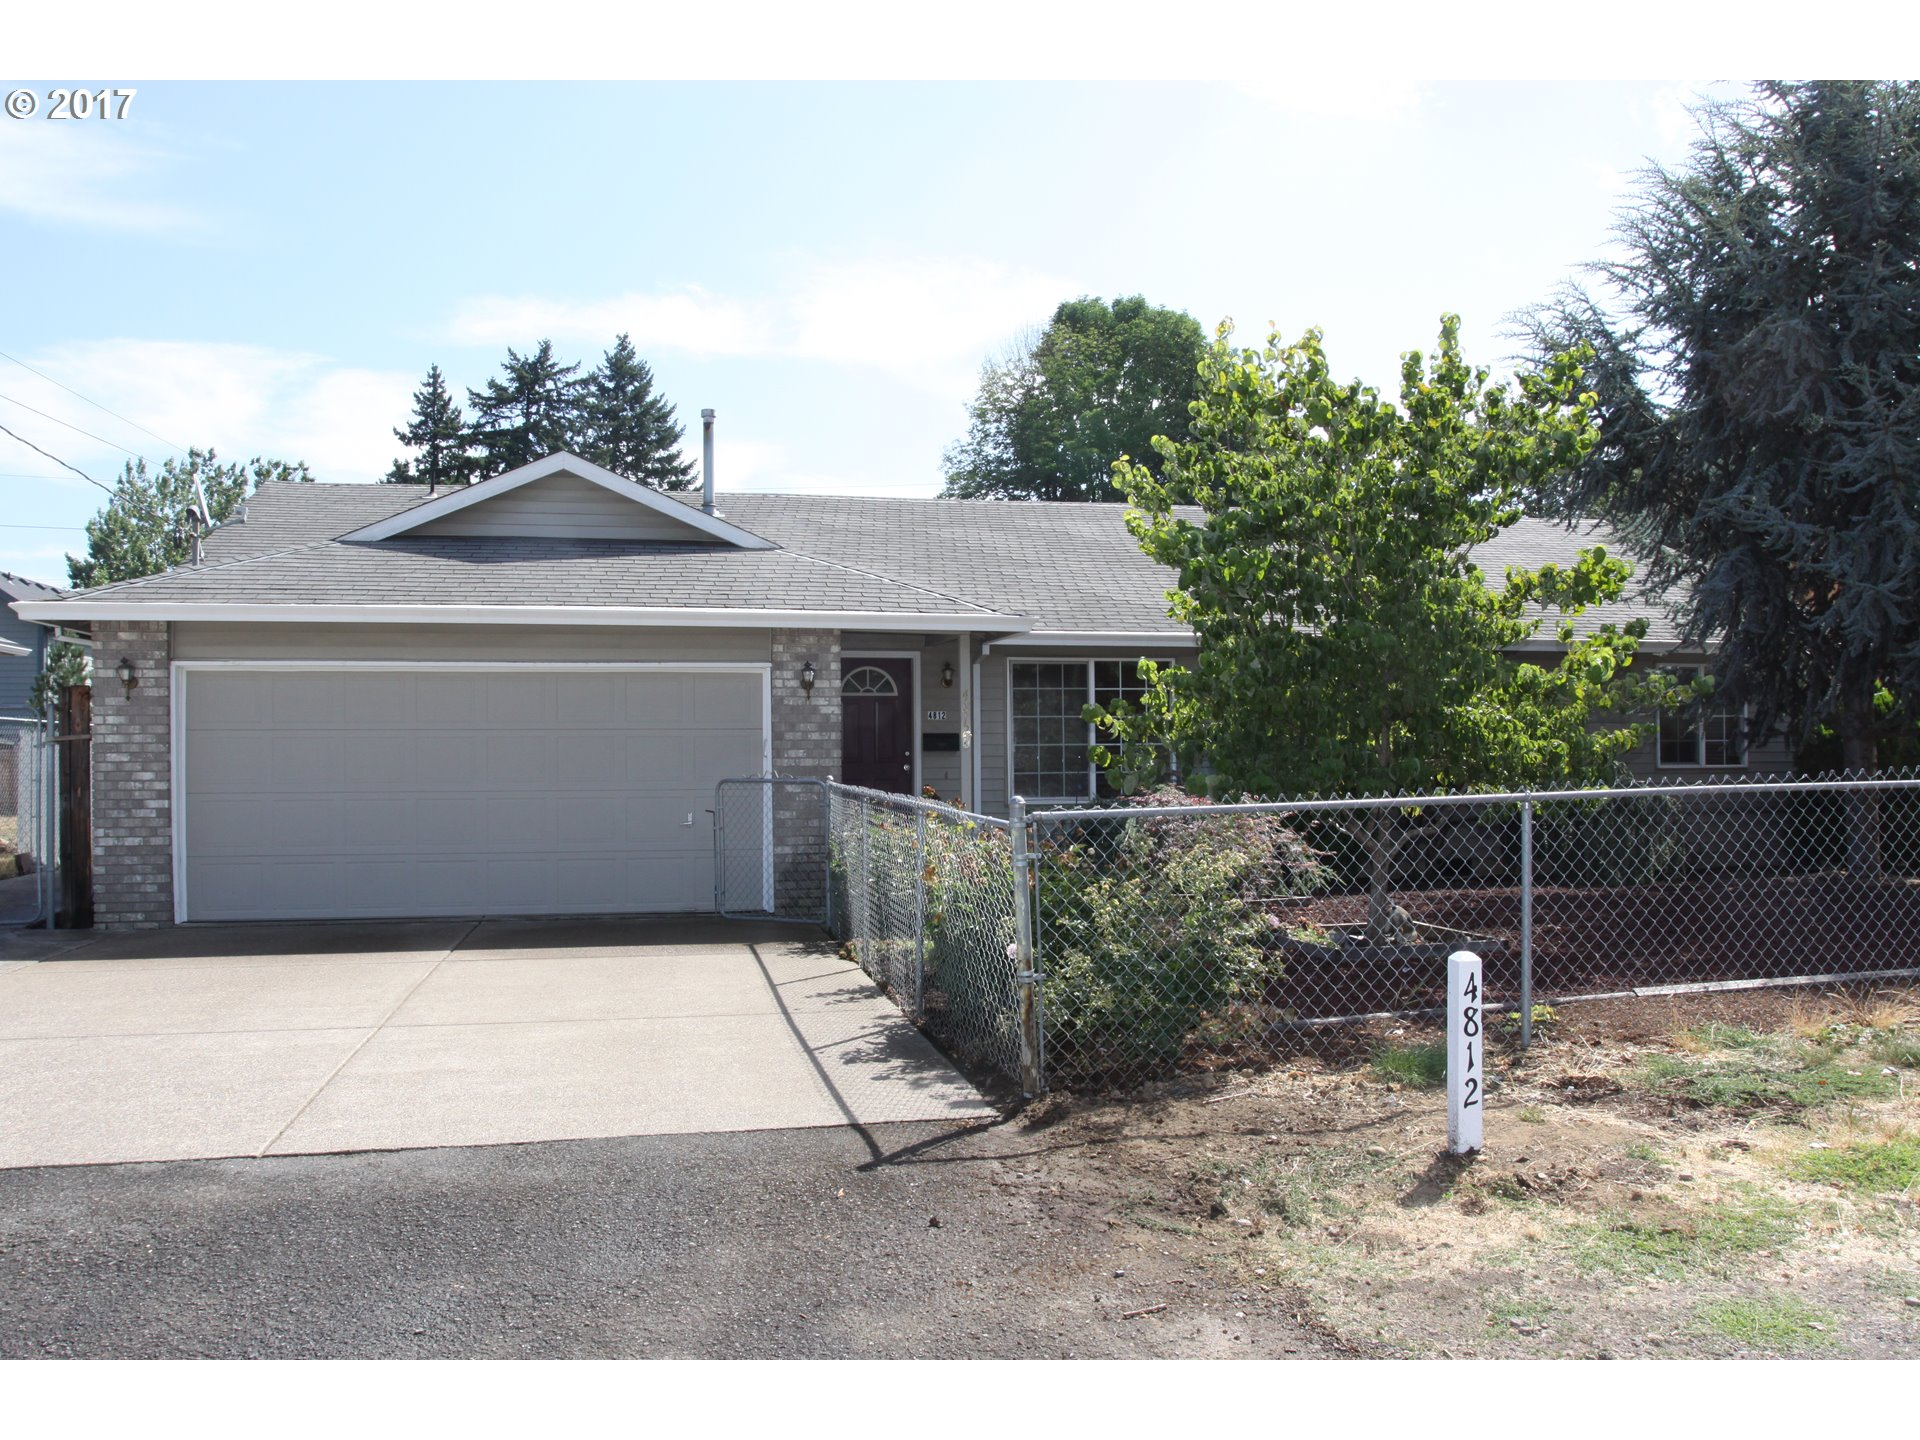 JUST LIKE NEW RANCH HOUSE,4 BEDROOMS 2 BATHS,VAULTED CEILLING WITH OPEN FLOOR PLAN,HUGE BACKYARD,CONVENIENT TO FREEWAY AND BULINE,READY FOR BUYER MOVE IN